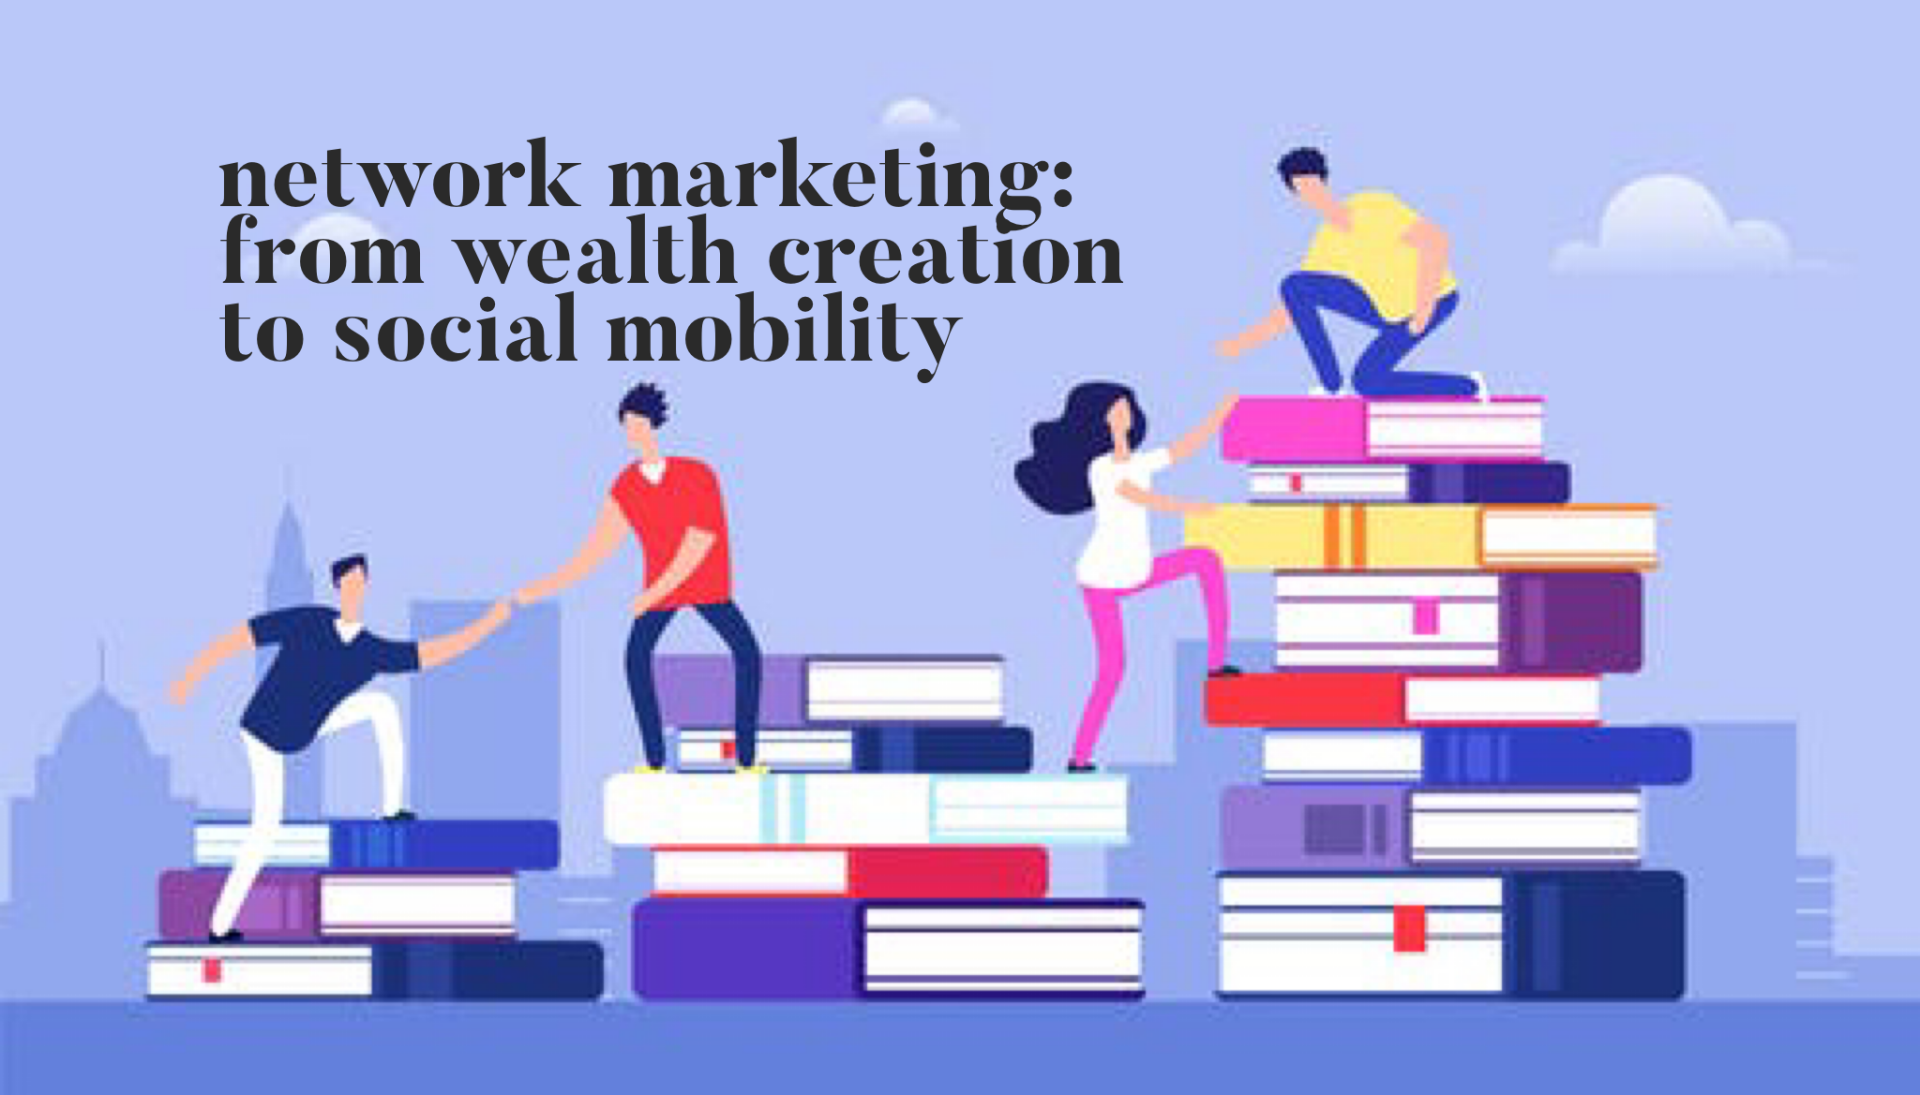 Network Marketing: From Wealth Creation to Social Mobility